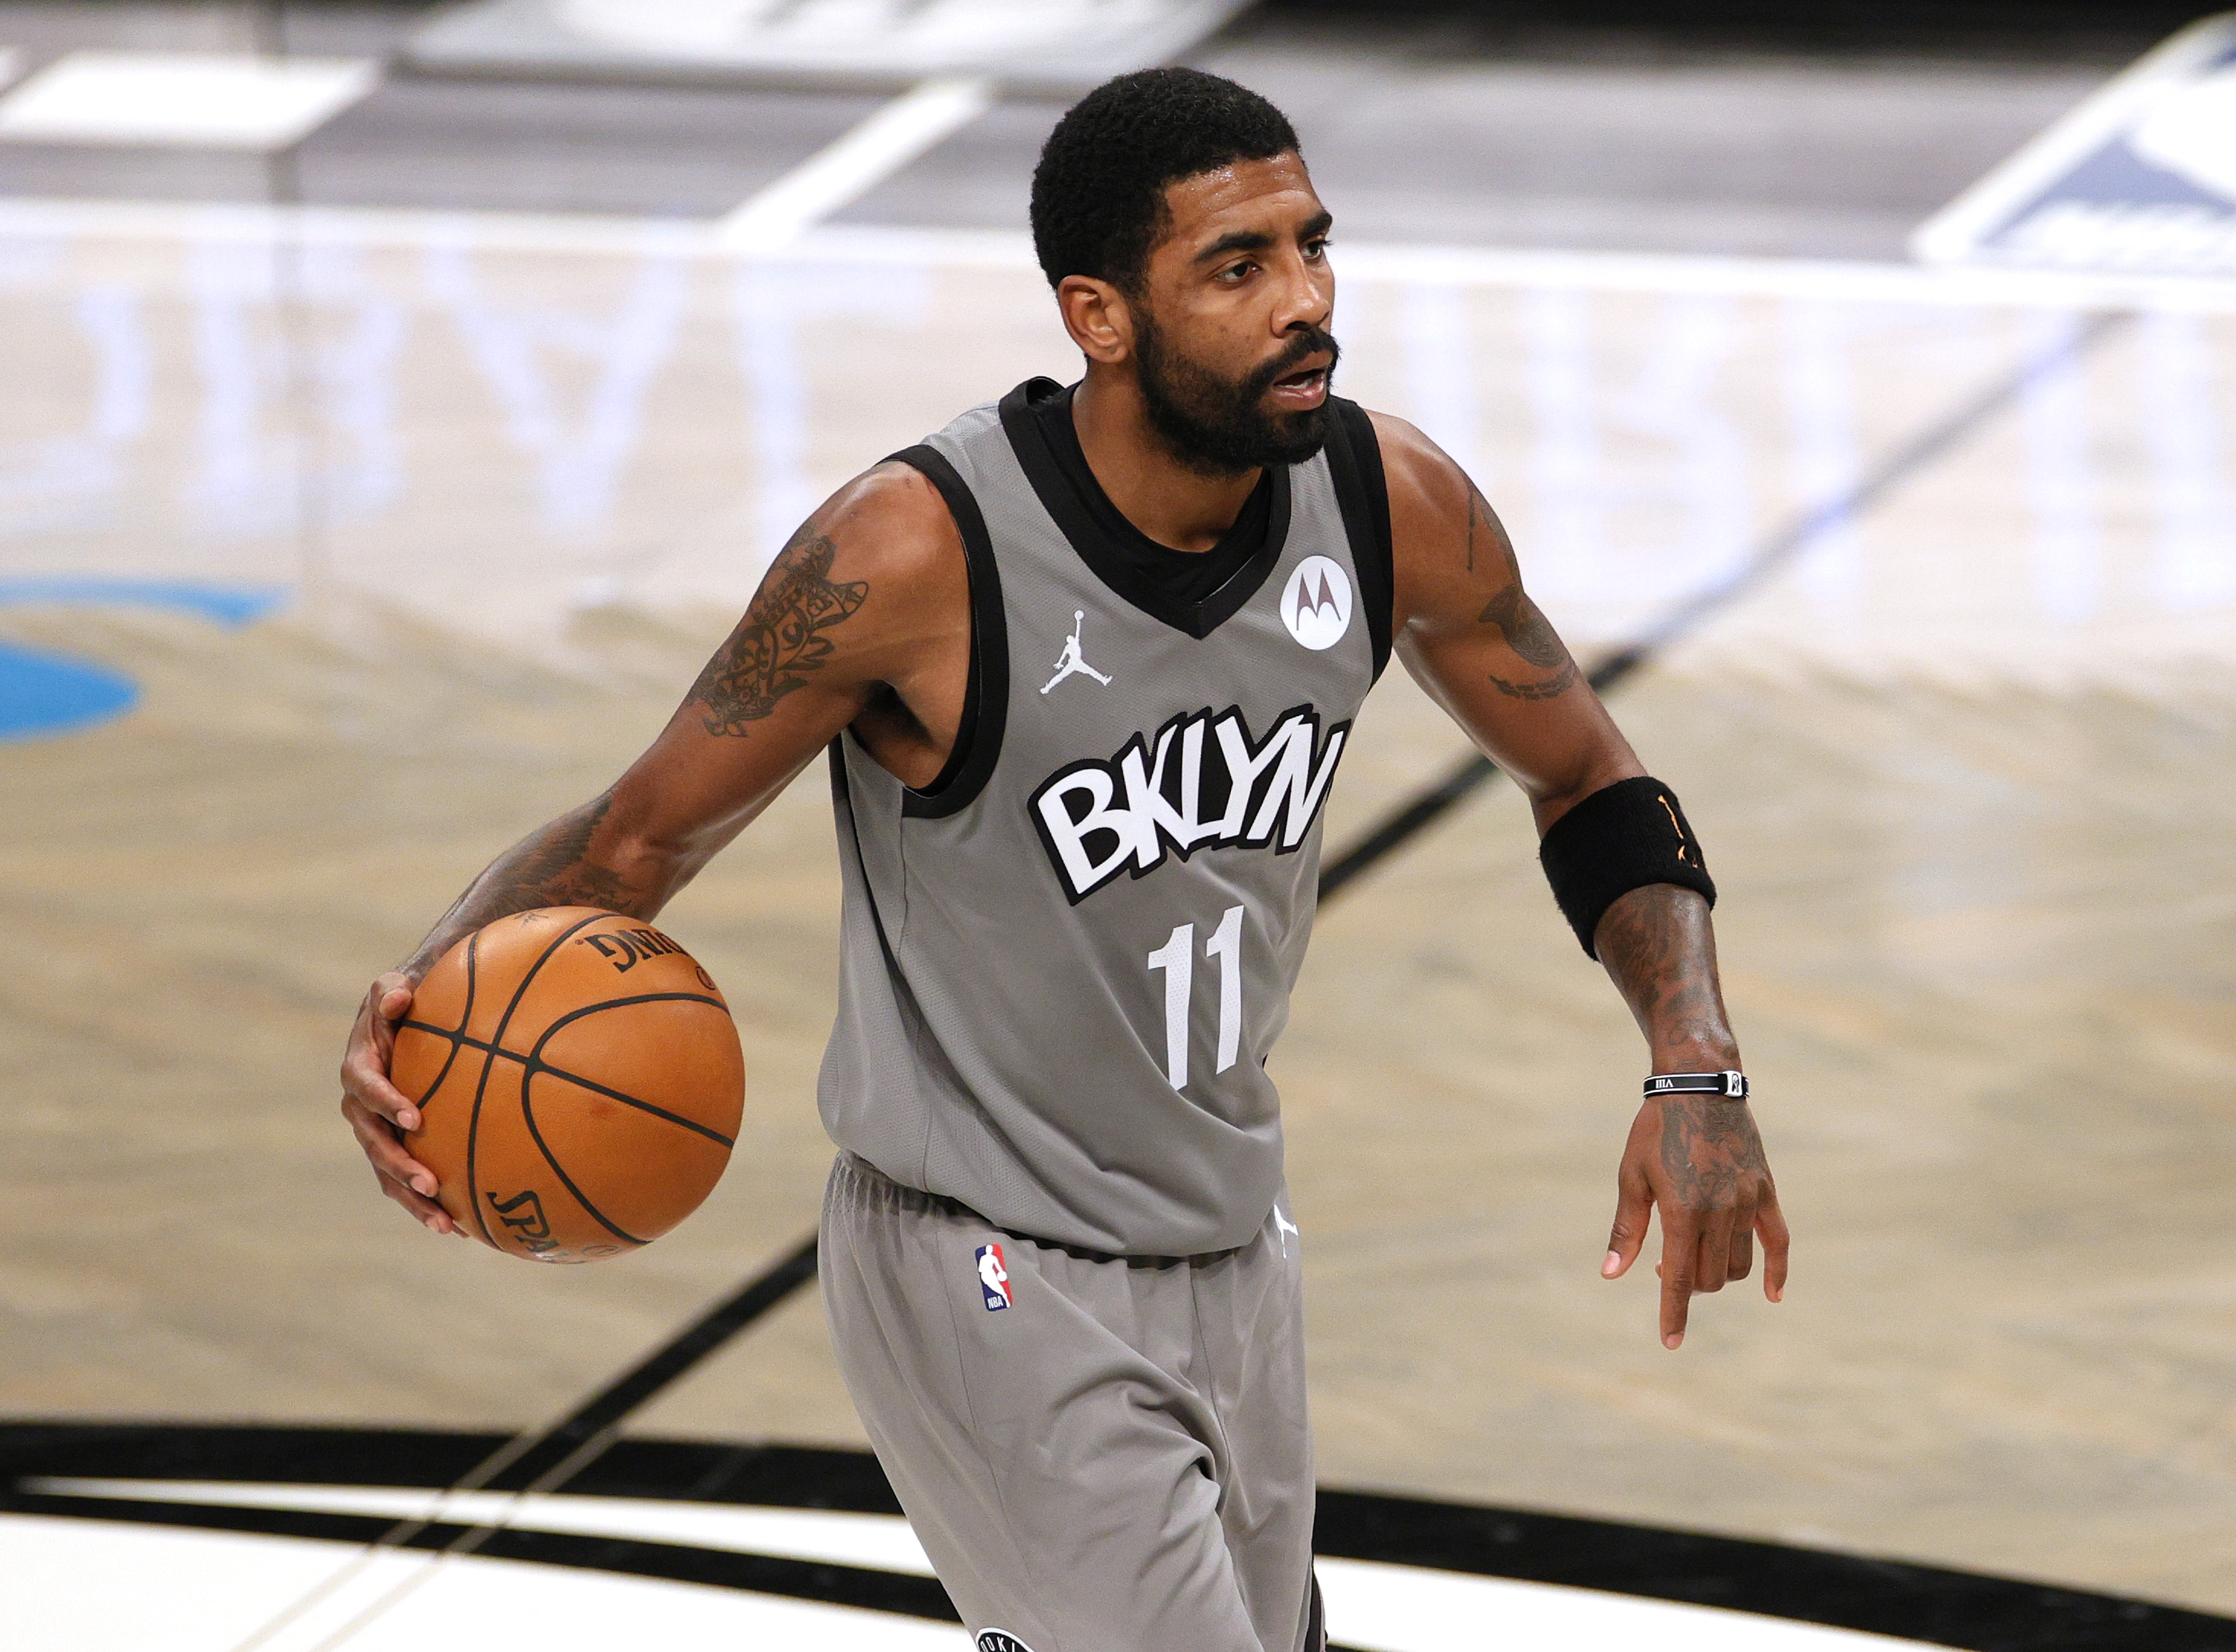 Brooklyn Nets star guard Kyrie Irving isn't getting off easy for ditching his team. Irving just gave up nearly $1 million for going AWOL.